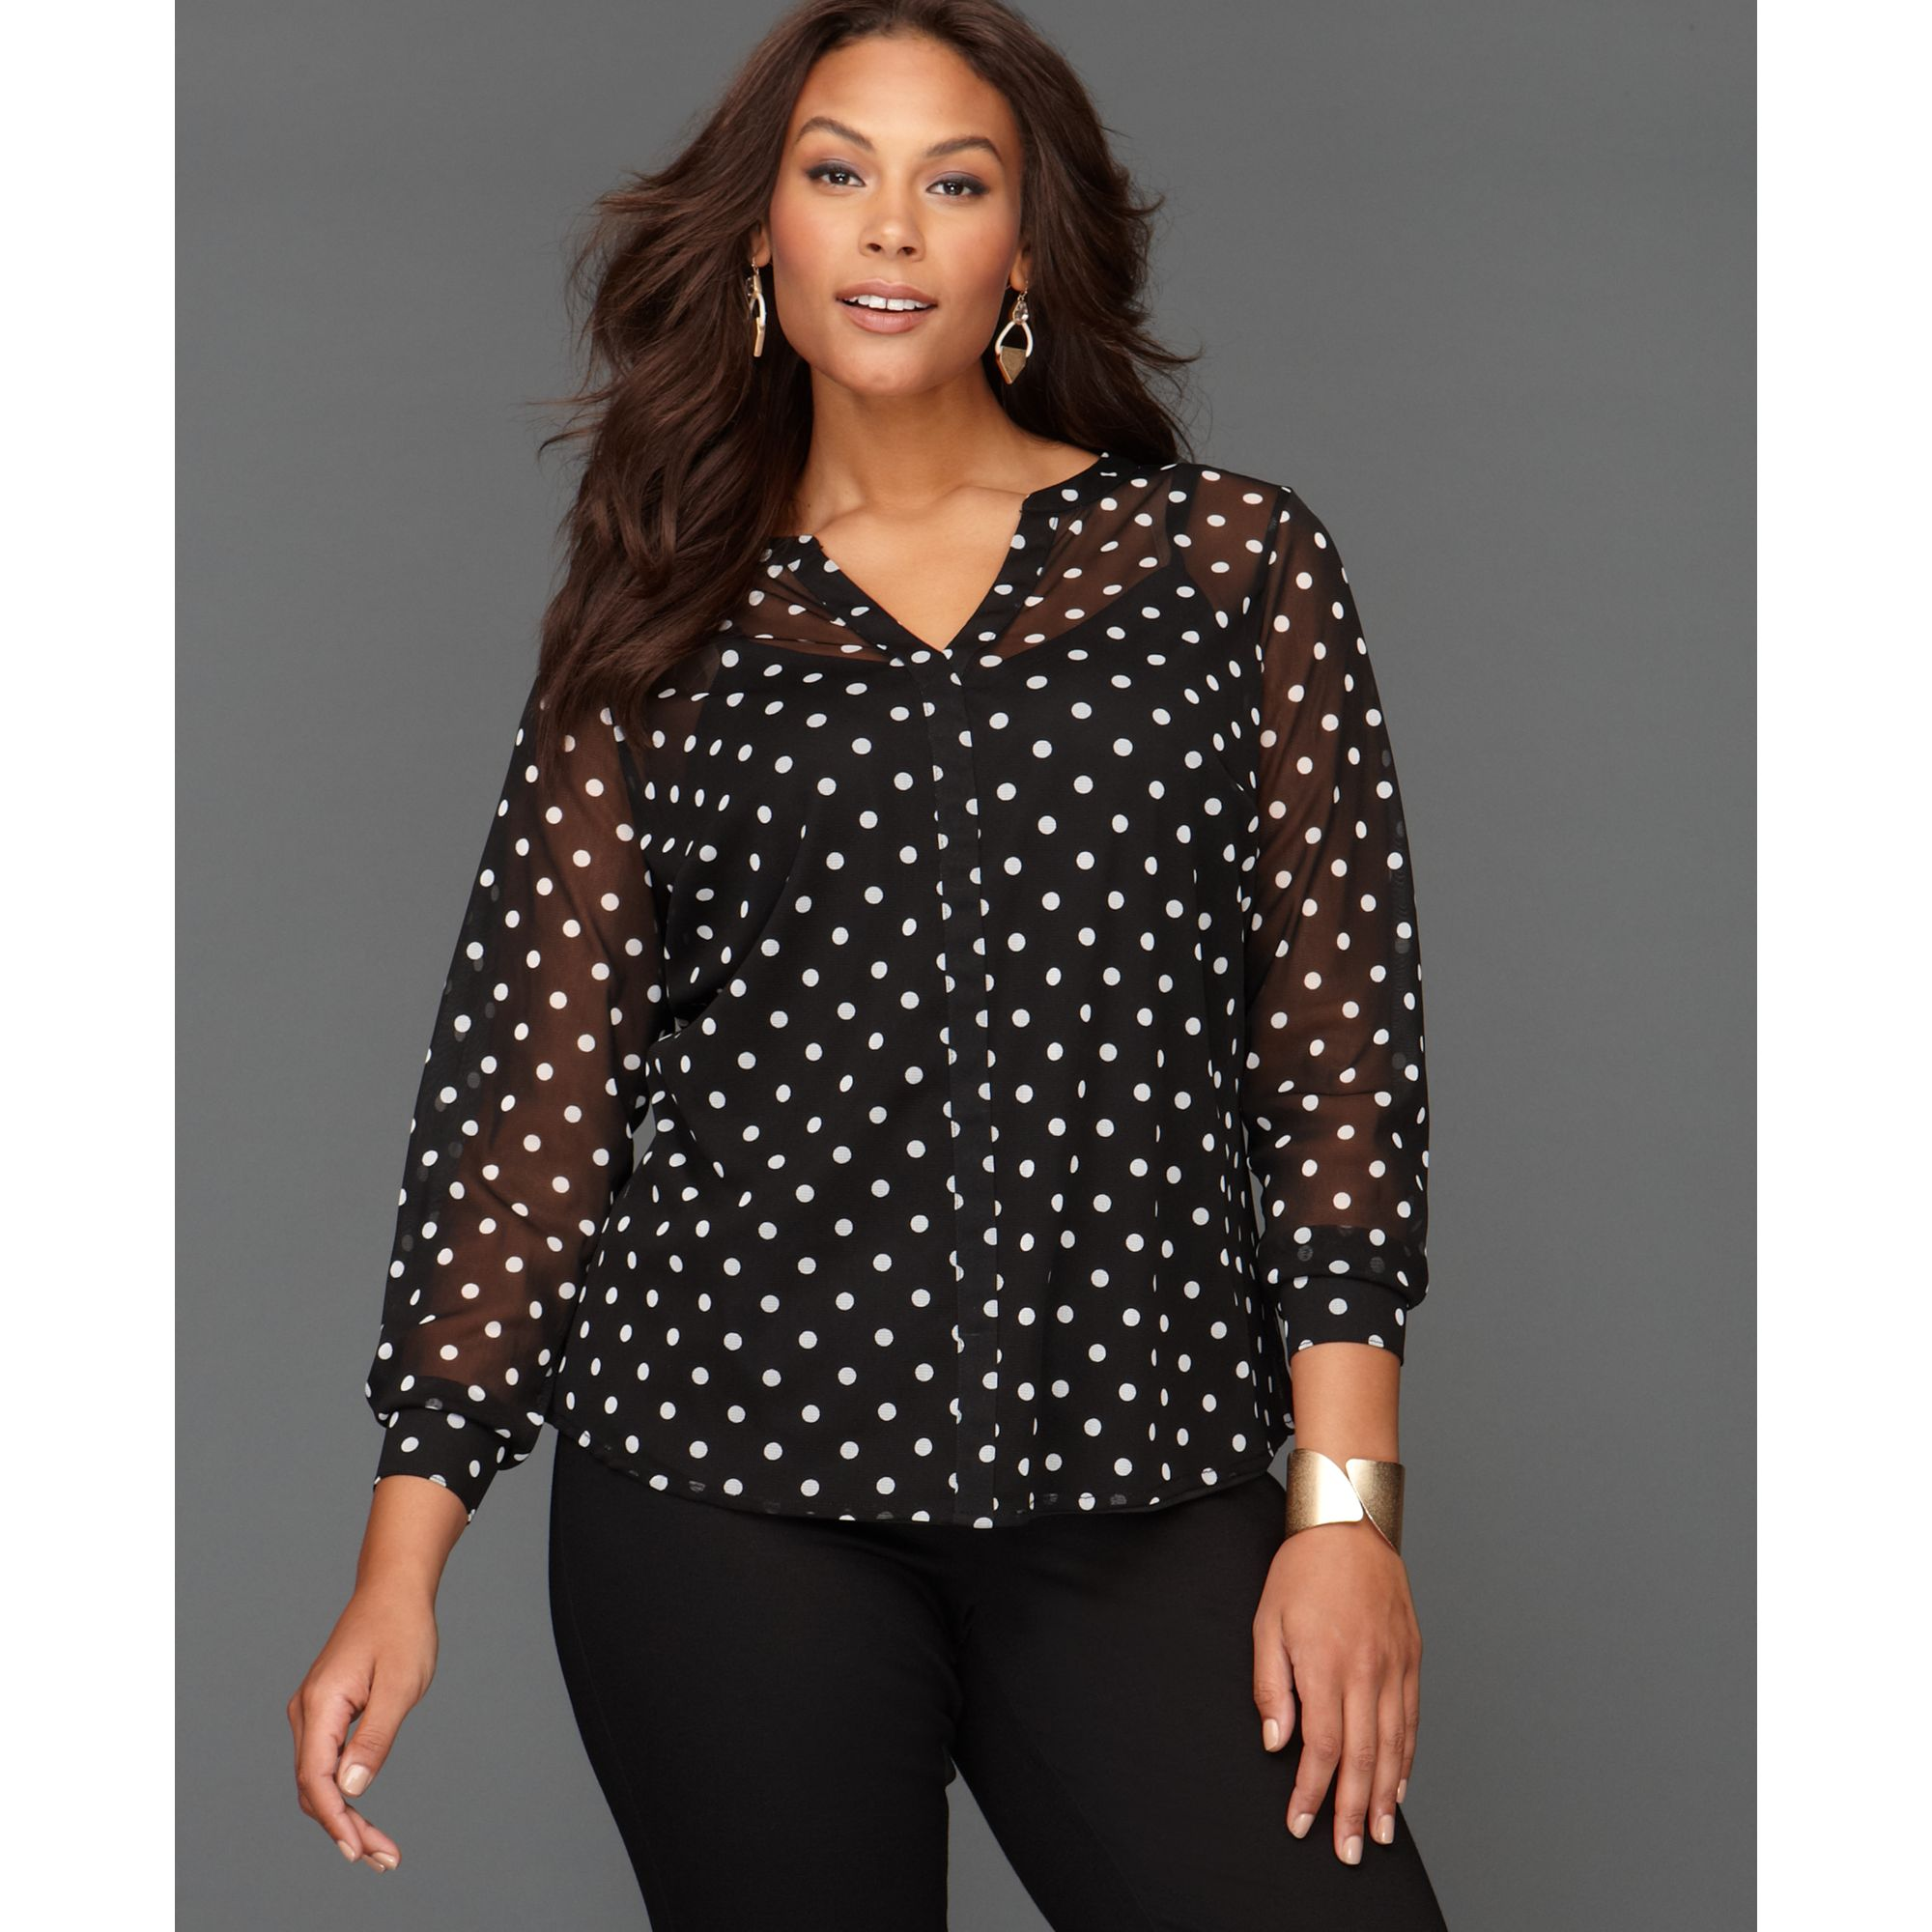 e672a4e9b96be4 INC International Concepts Polka-dot Blouse in Black - Lyst